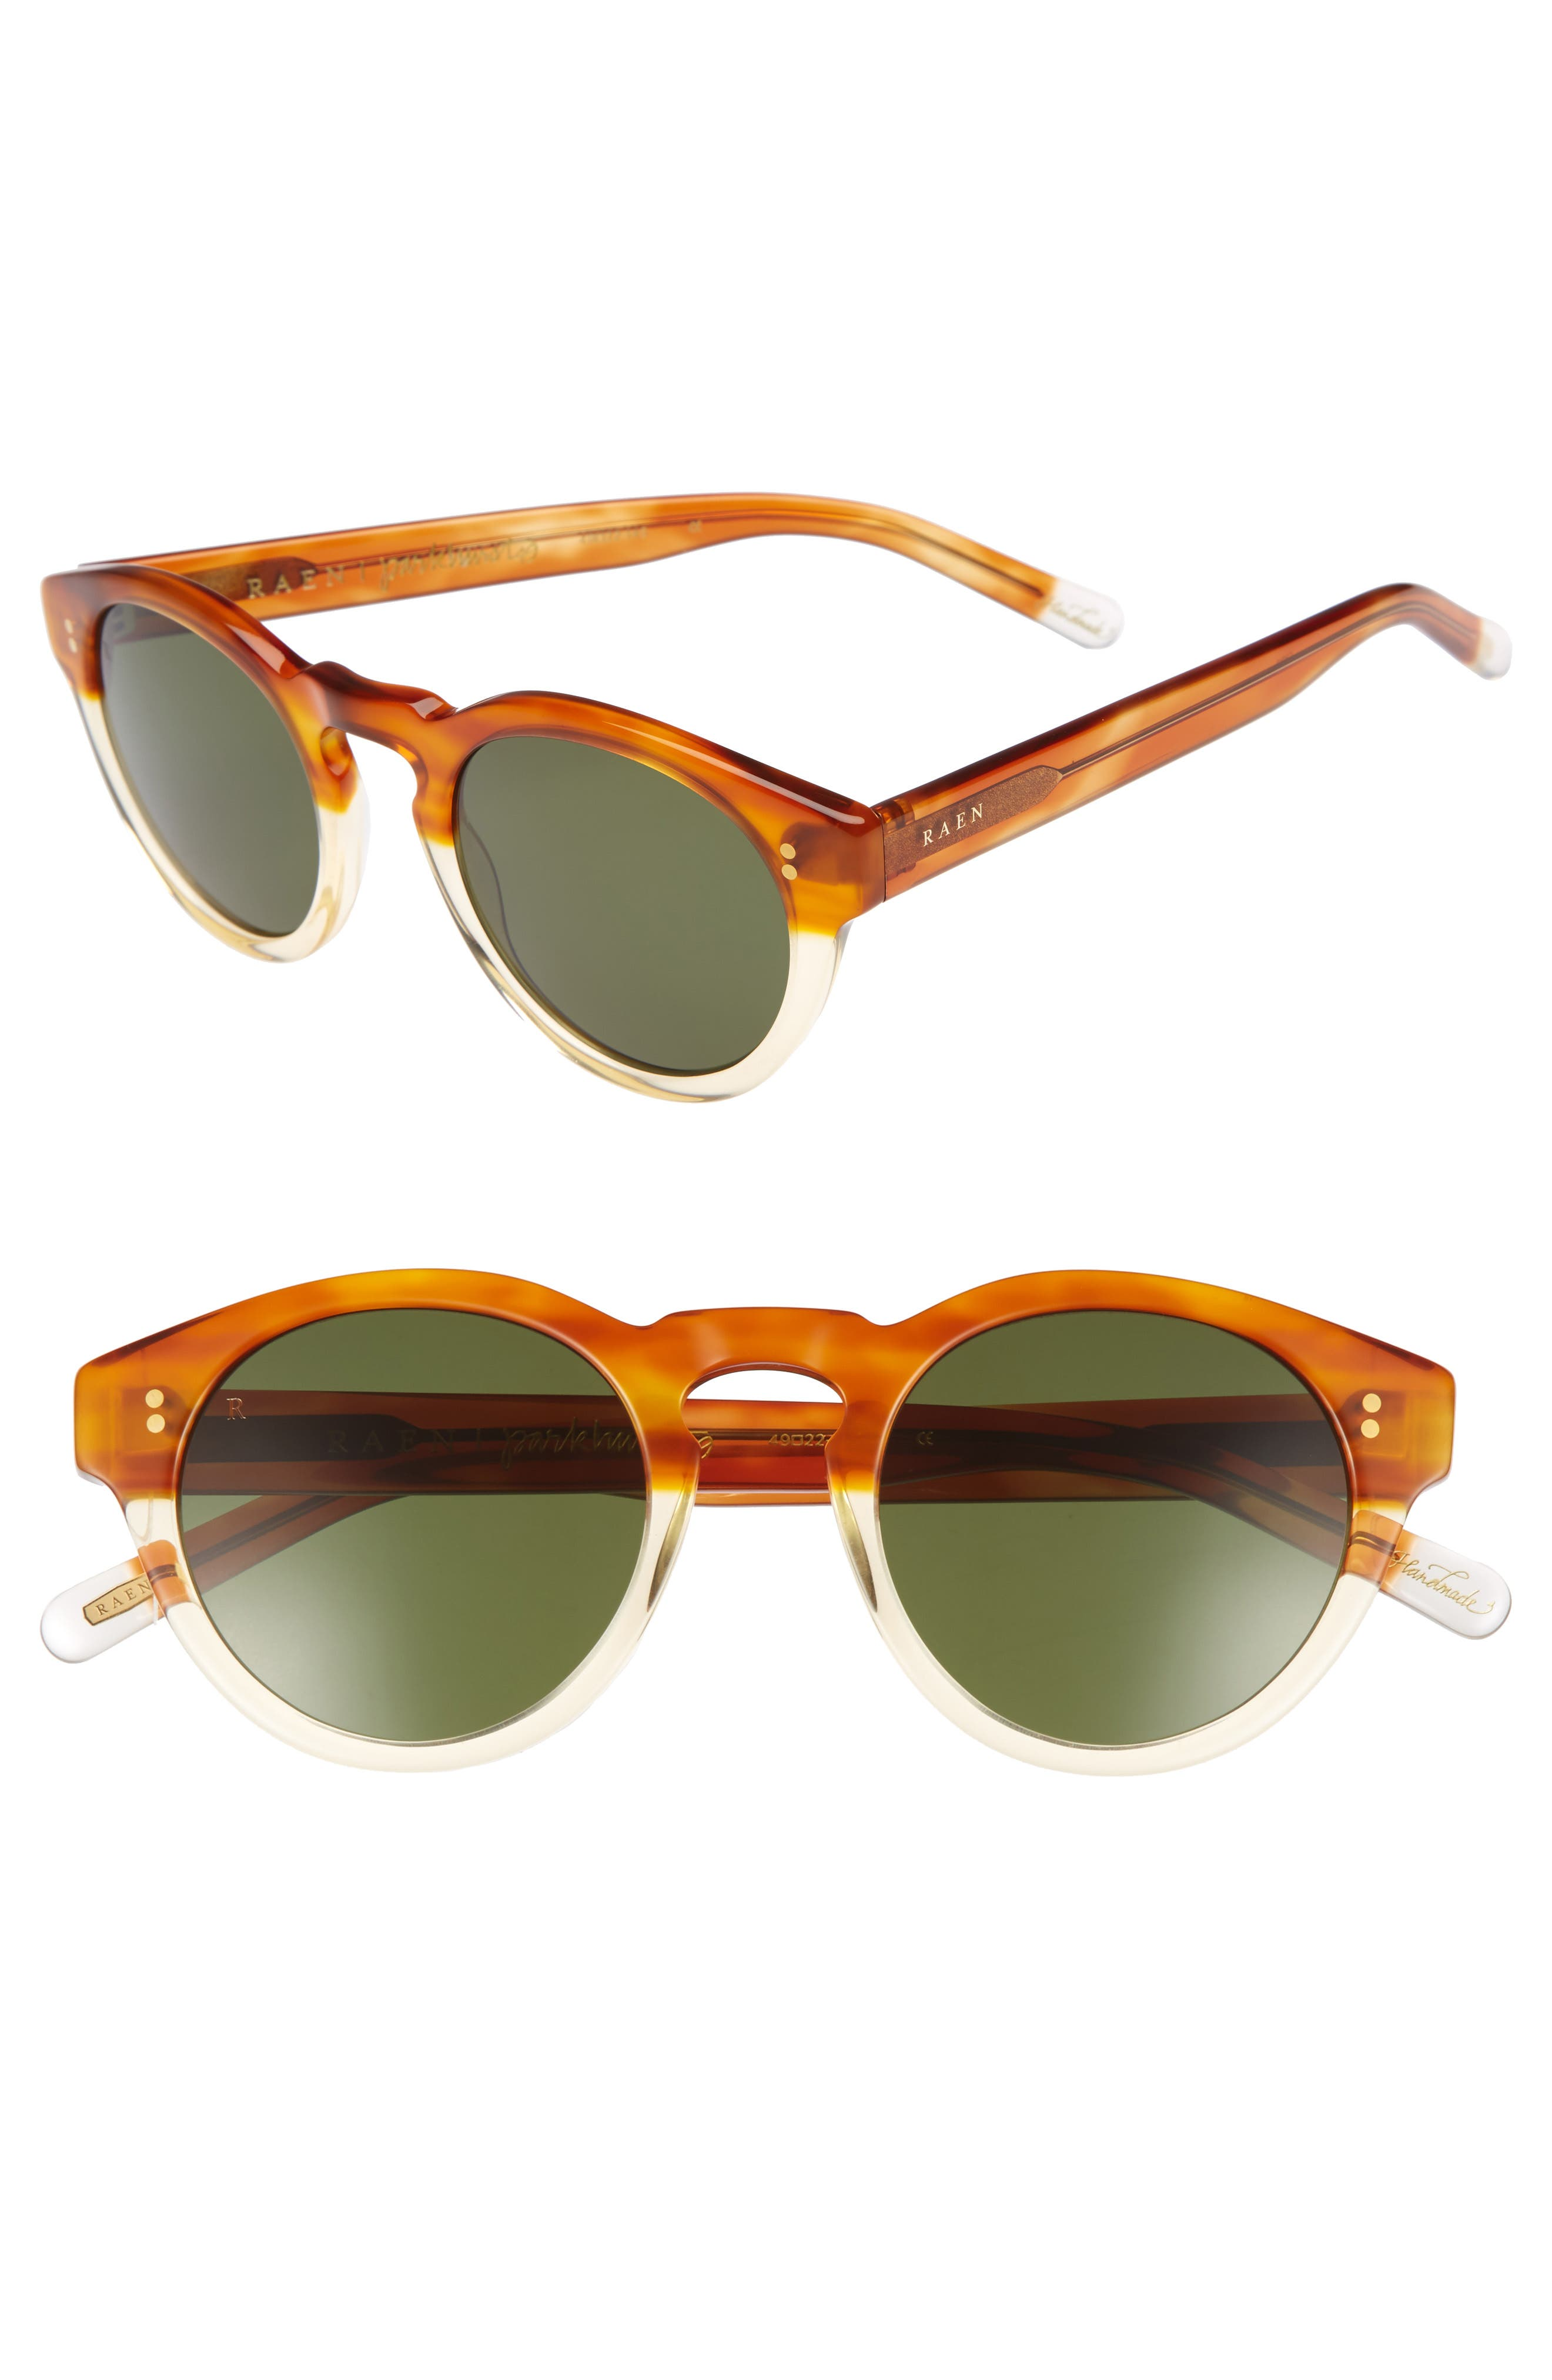 Parkhurst 49mm Sunglasses,                             Main thumbnail 1, color,                             Honey Havana/ Green